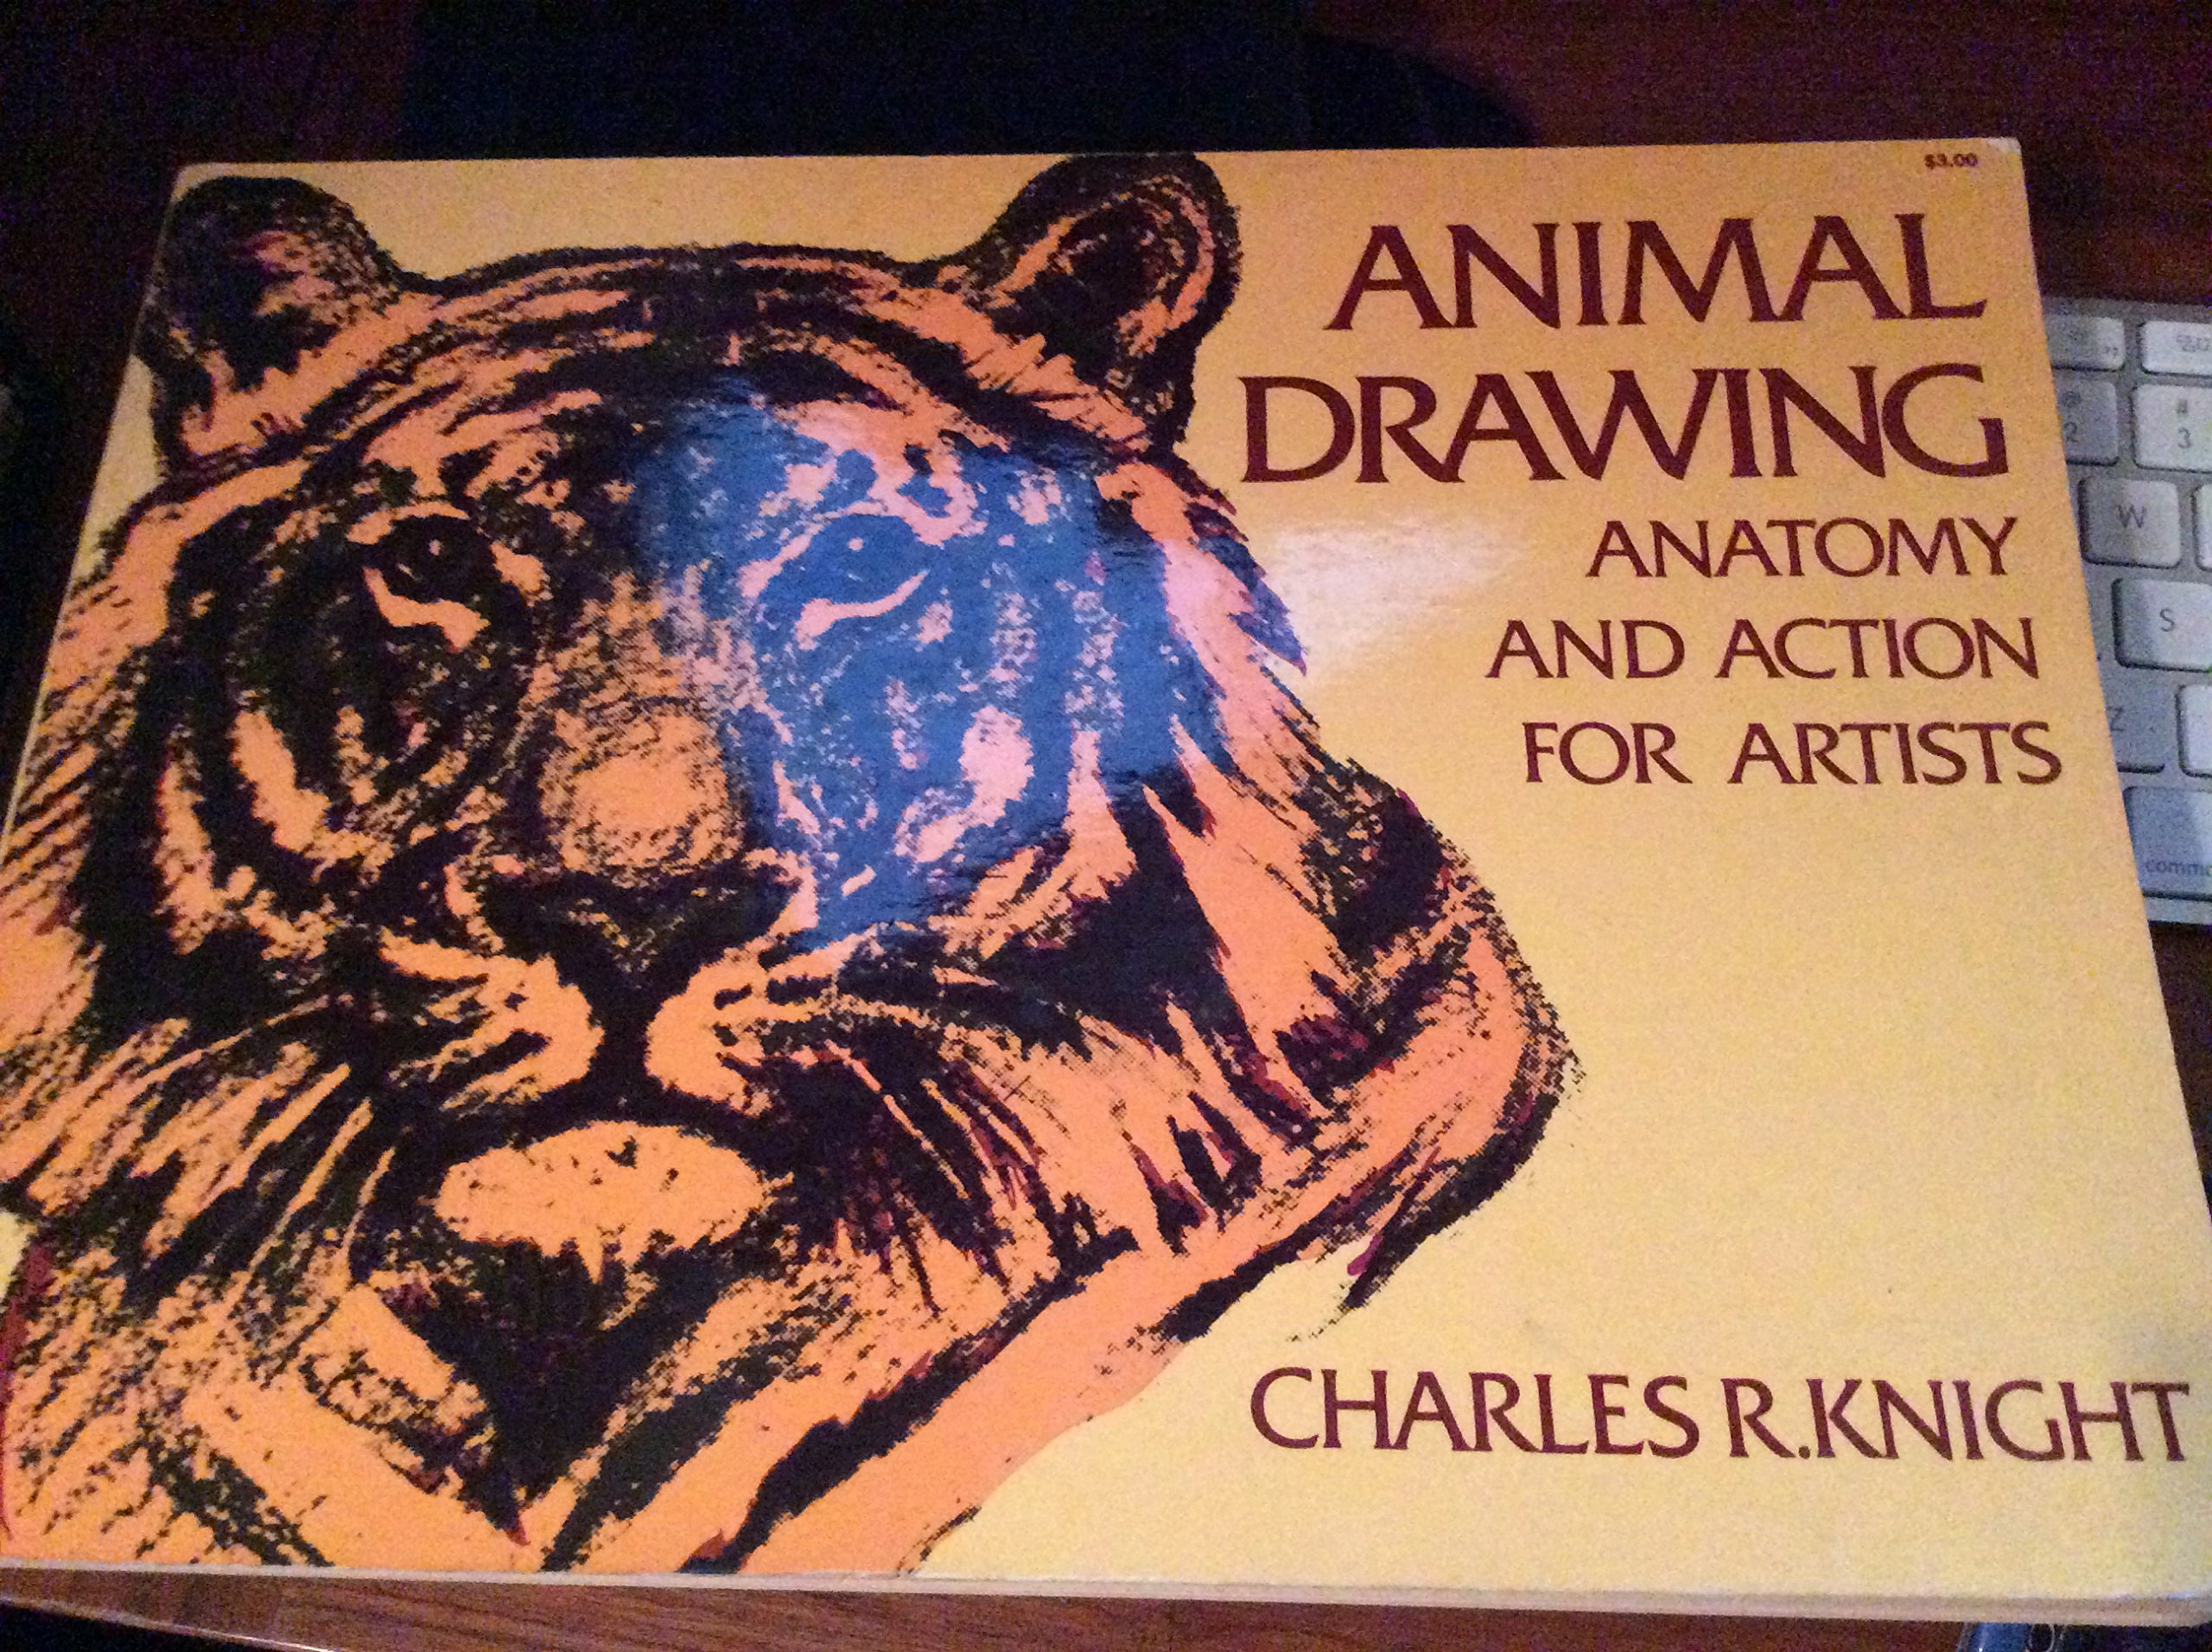 Animal Drawing, Anatomy and Action for Artists